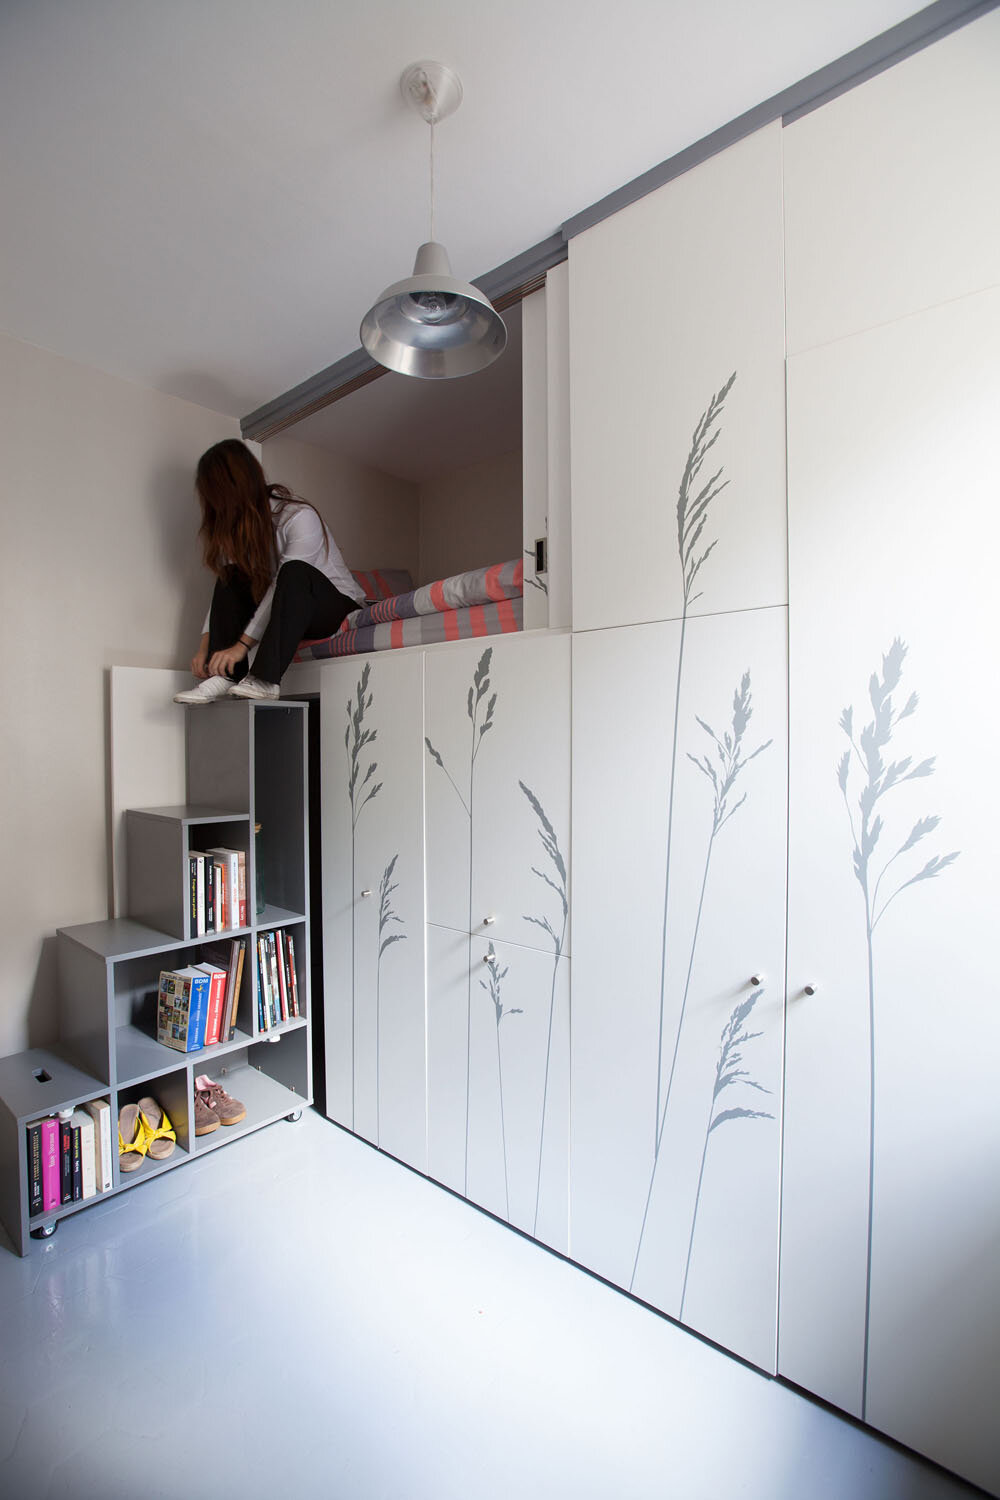 Tiny apartment in paris kitoko studio transform 8 square meters - Small housessquare meters ...